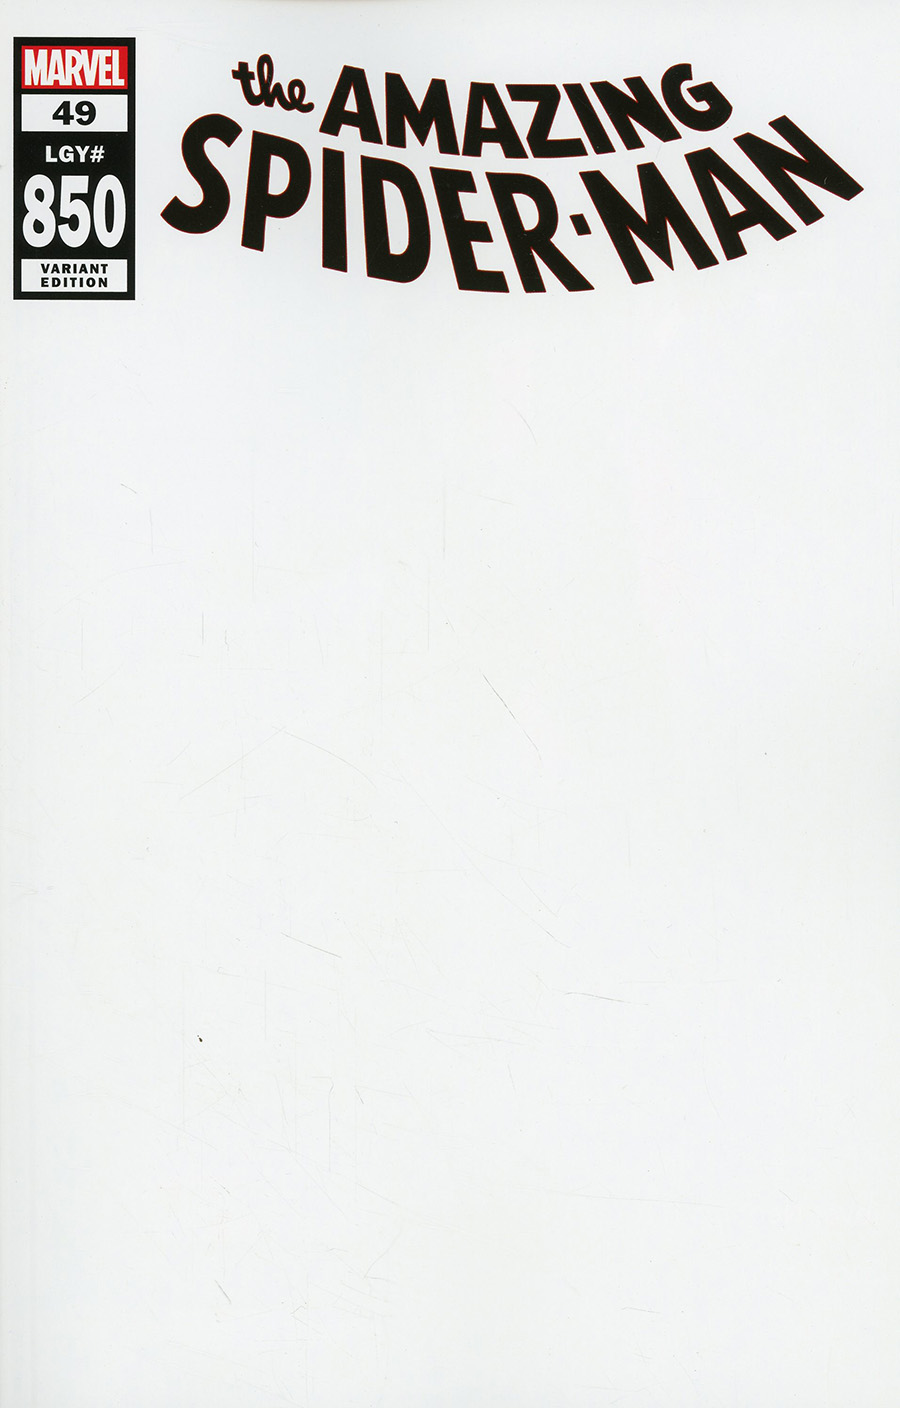 Amazing Spider-Man Vol 5 #49 Cover M Variant Blank Cover (#850)